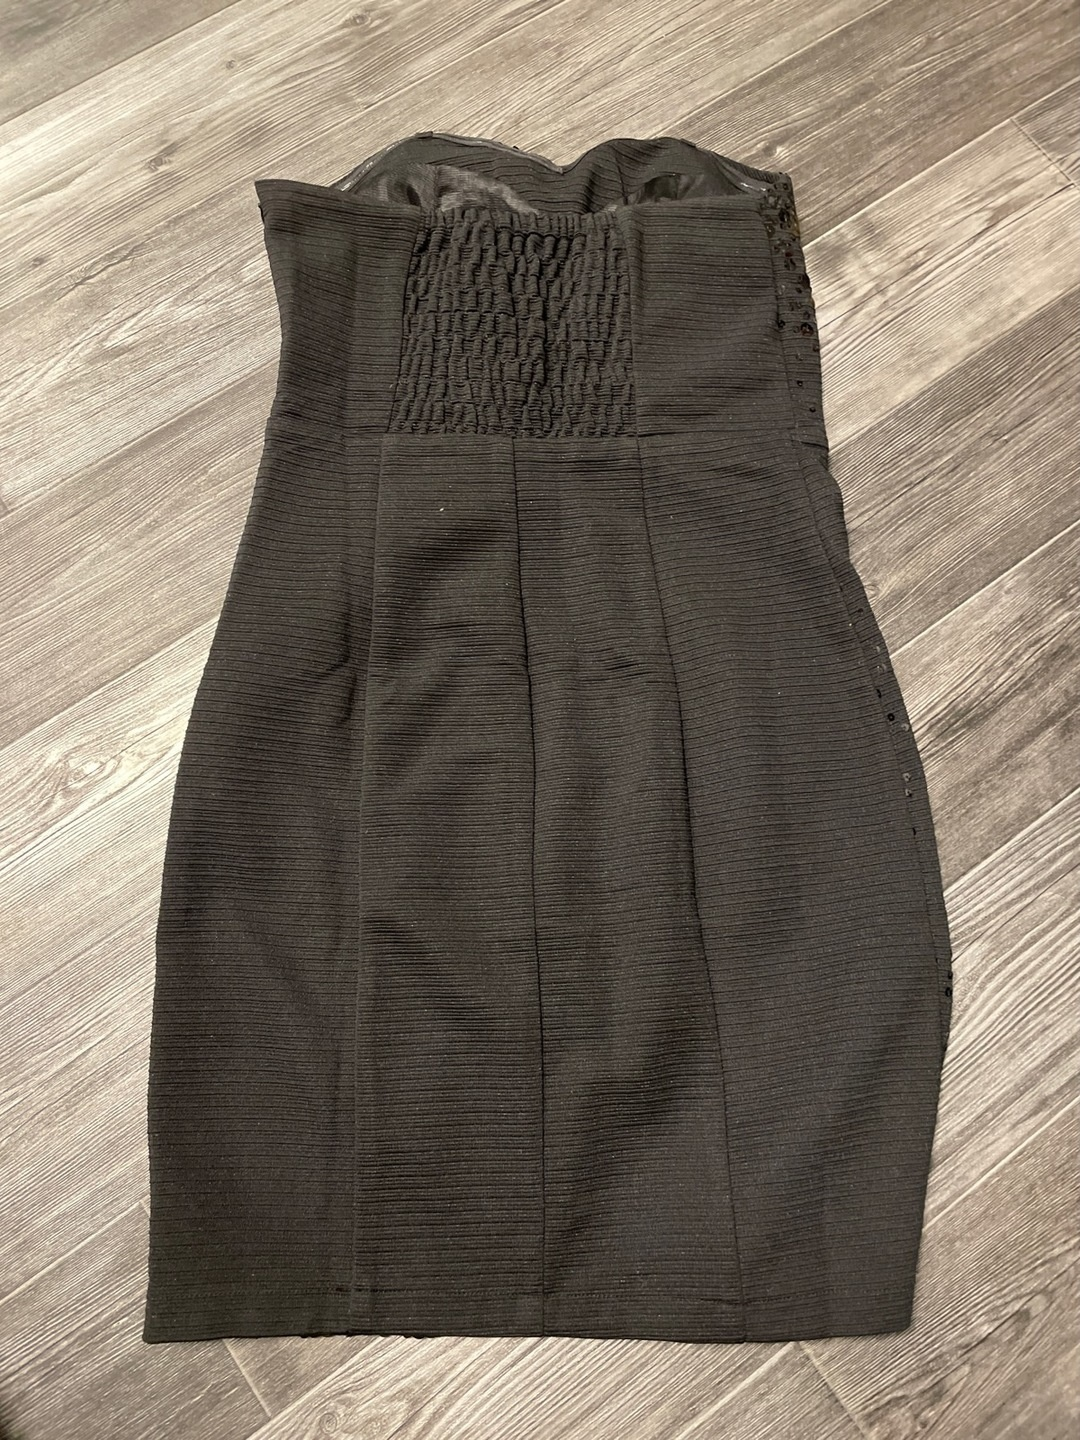 Women's dresses - LUXE COLLECTION photo 2